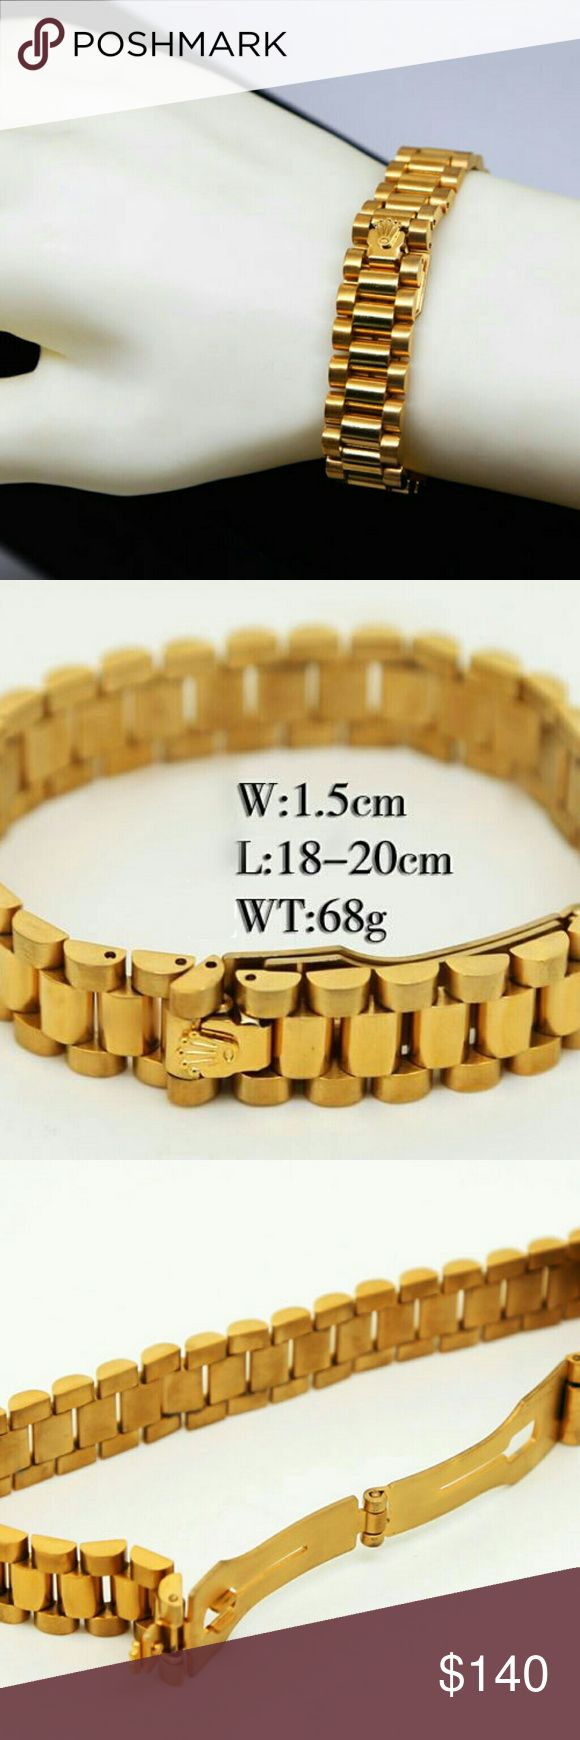 $50 Rolex bracelet 24K gold plated best quality fashion Rolex bracelets for women and men, very good quality. two sizes: 18-20CM, can be adjustable. for men and women.24k plated titanium steel, no fade. no tarnish. if interest comment email, will contact immediately, or contact clockdadida @ gmail, $50for one, $80 for two, wholesale more discount, welcome wholesale. free fast shipping US, use USPS, 5-7 days fast delivery Rolex Accessories Jewelry